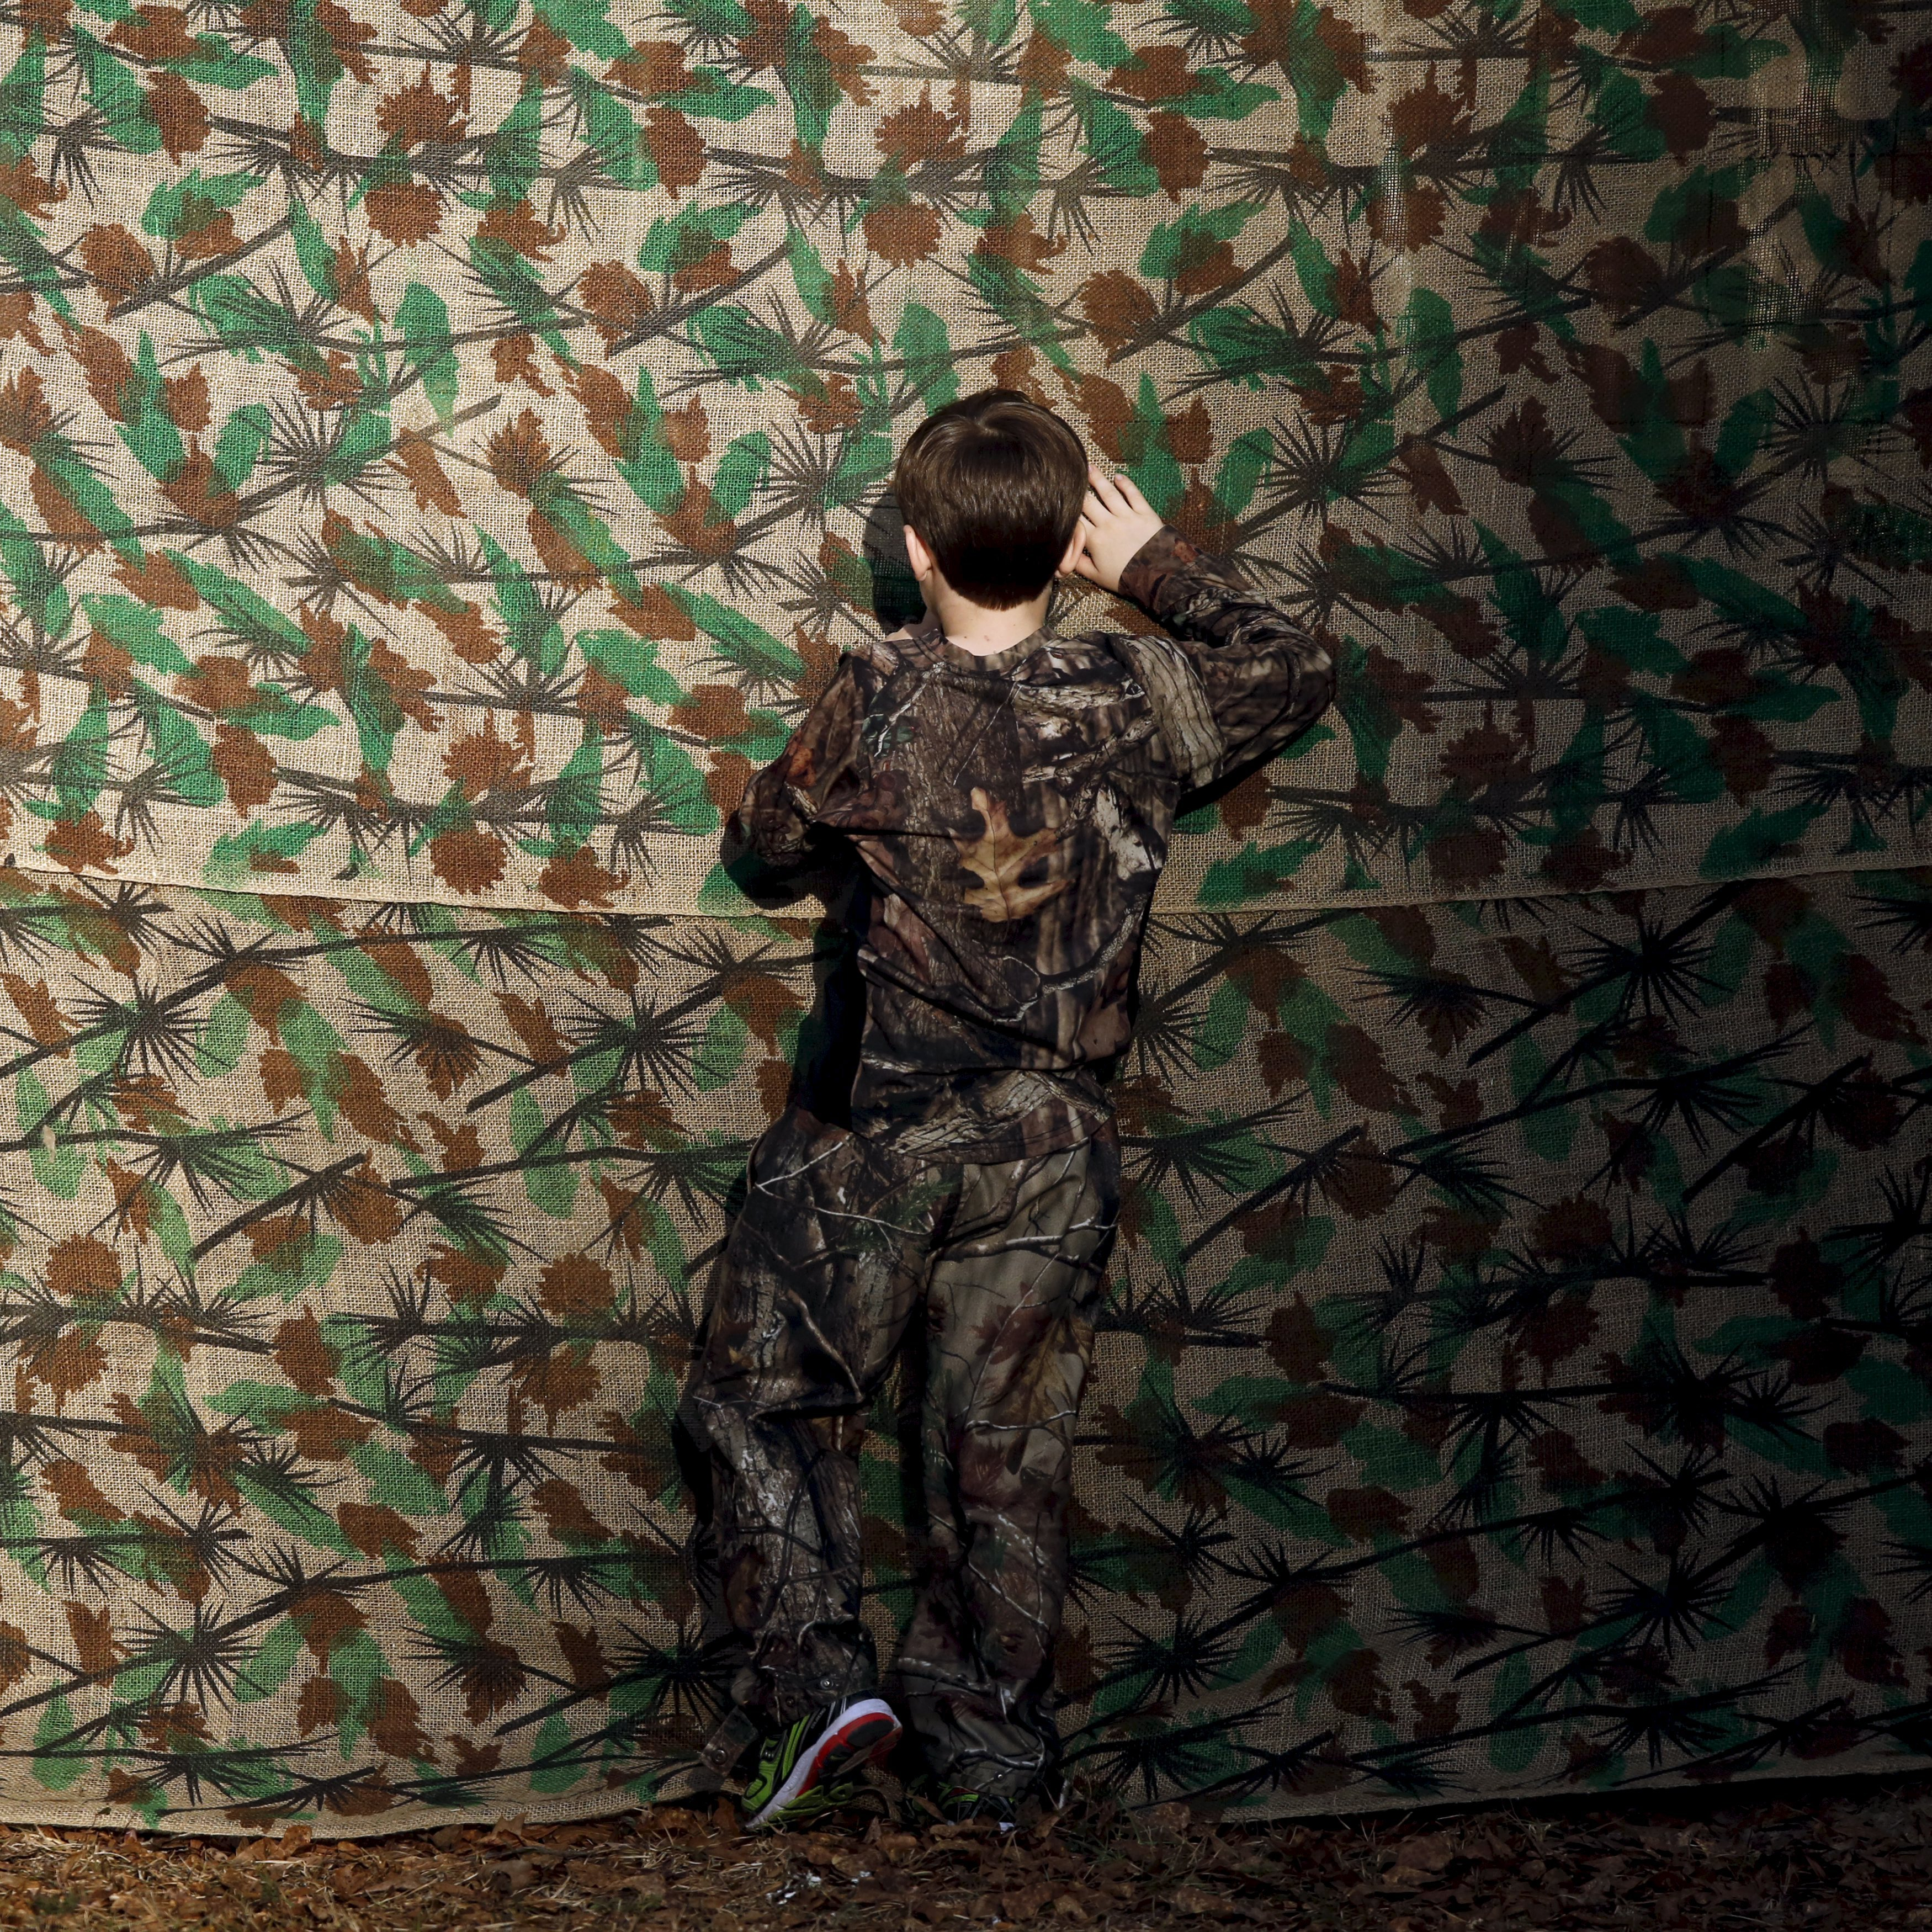 A young boy in camouflage clothing looks through a cloth backdrop to get a glimpse of U.S. Republican presidential candidate Donald Trump at a rally in Walterboro, S.C. on Feb. 17, 2016.